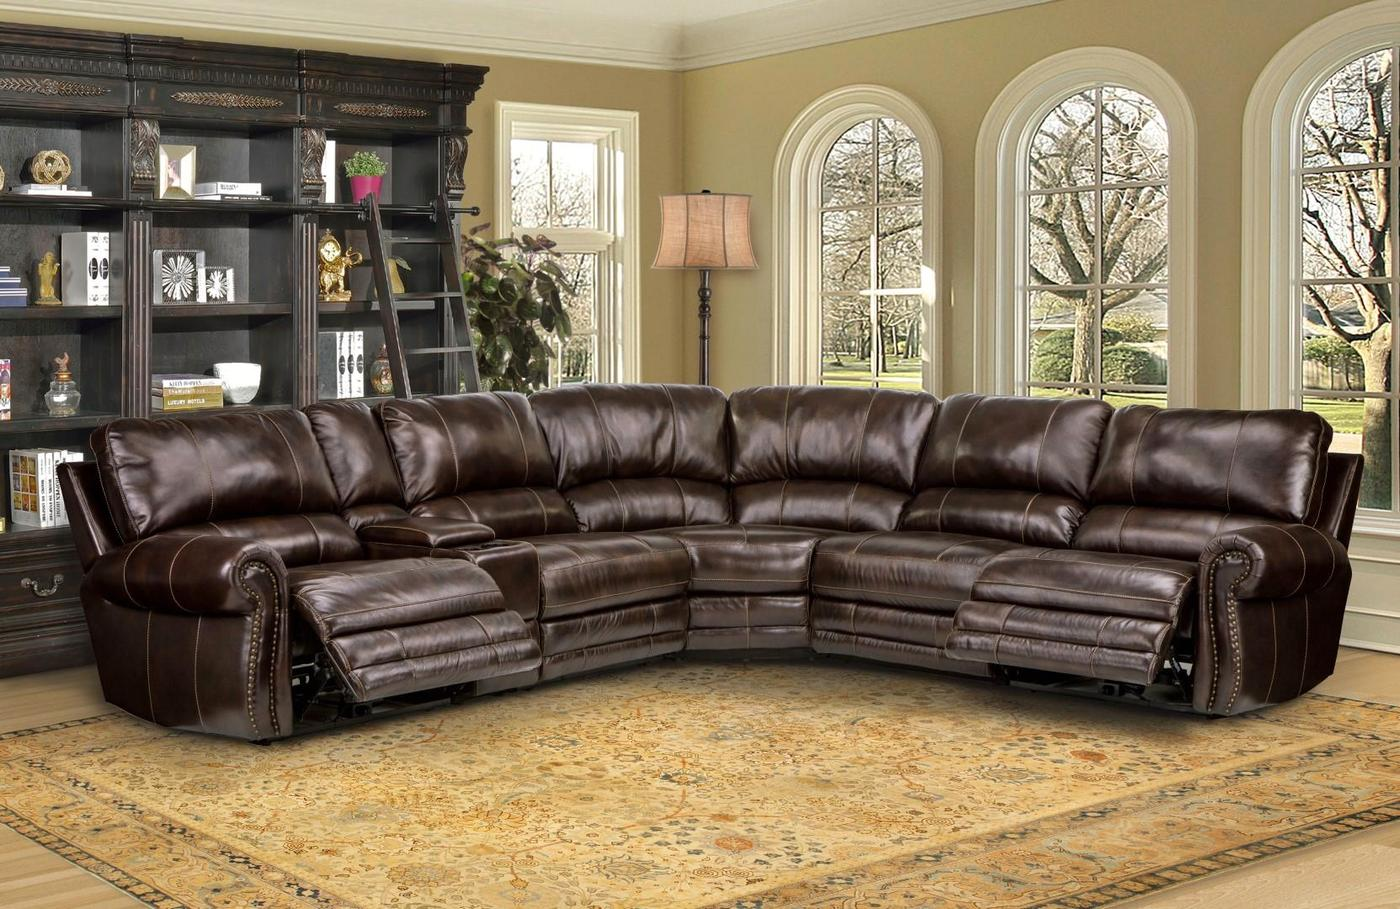 Details About Thurston Havana Modular Genuine Leather Sectional Sofa W Armless Recliner